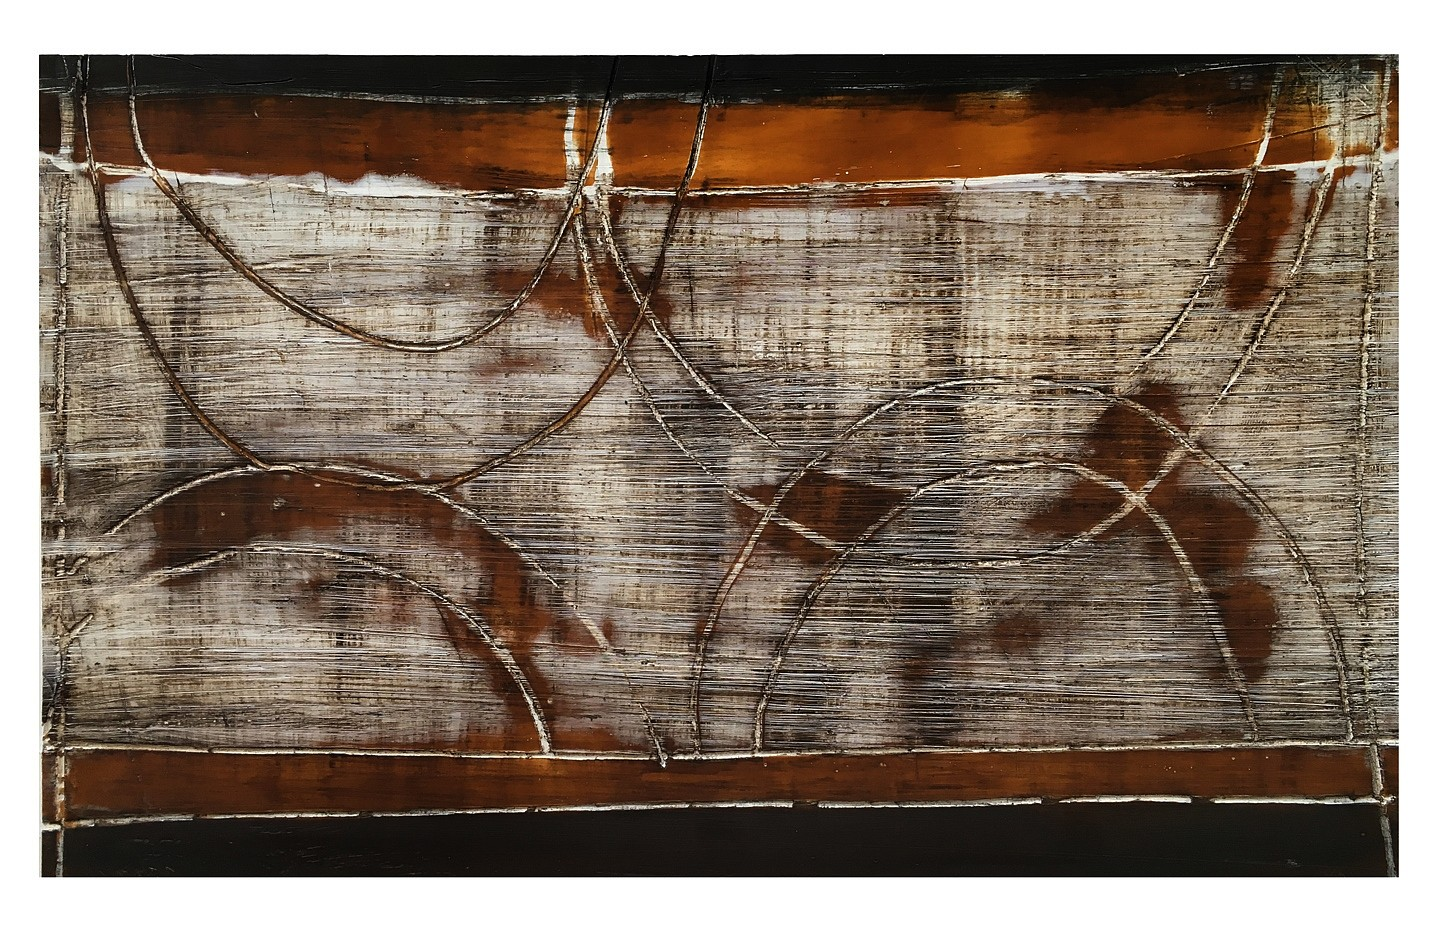 Don Maynard   Gates of Horn , 2018  MAY393   encaustic on paper, 22 x 30 inch paper / 12 x 20 inch image